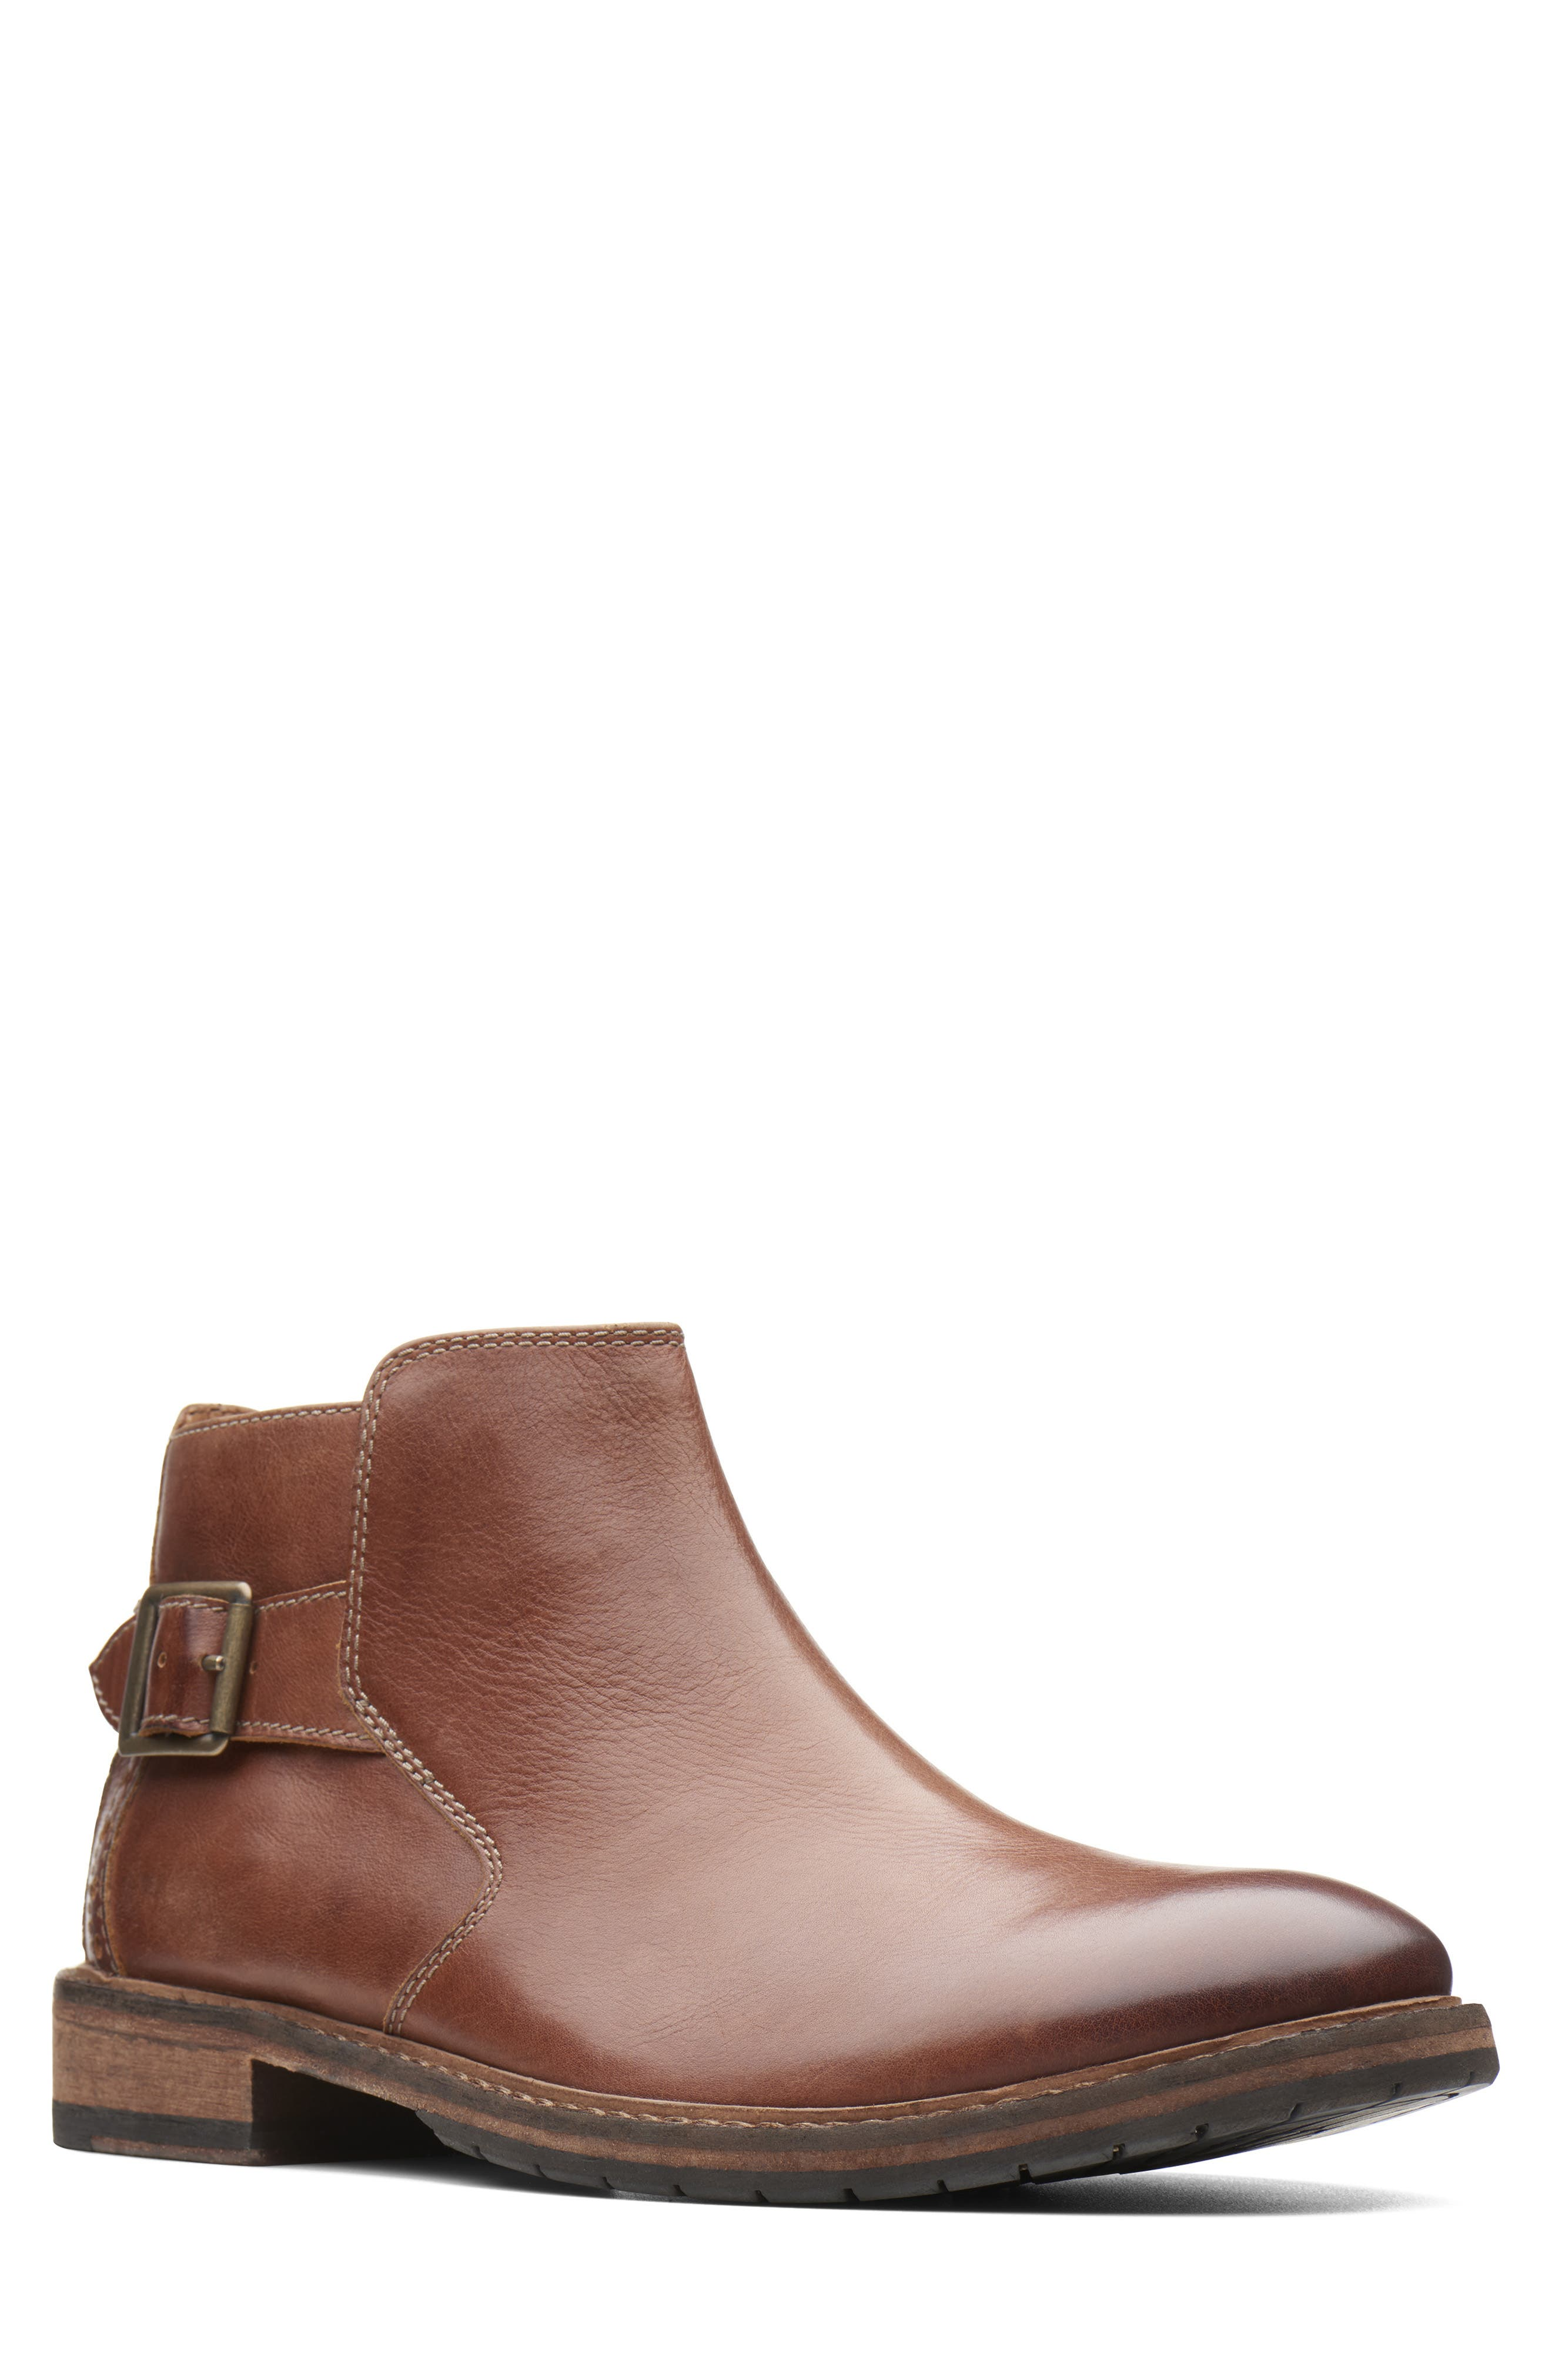 Clarkdale Remi Ankle Boot,                         Main,                         color, DARK TAN LEATHER